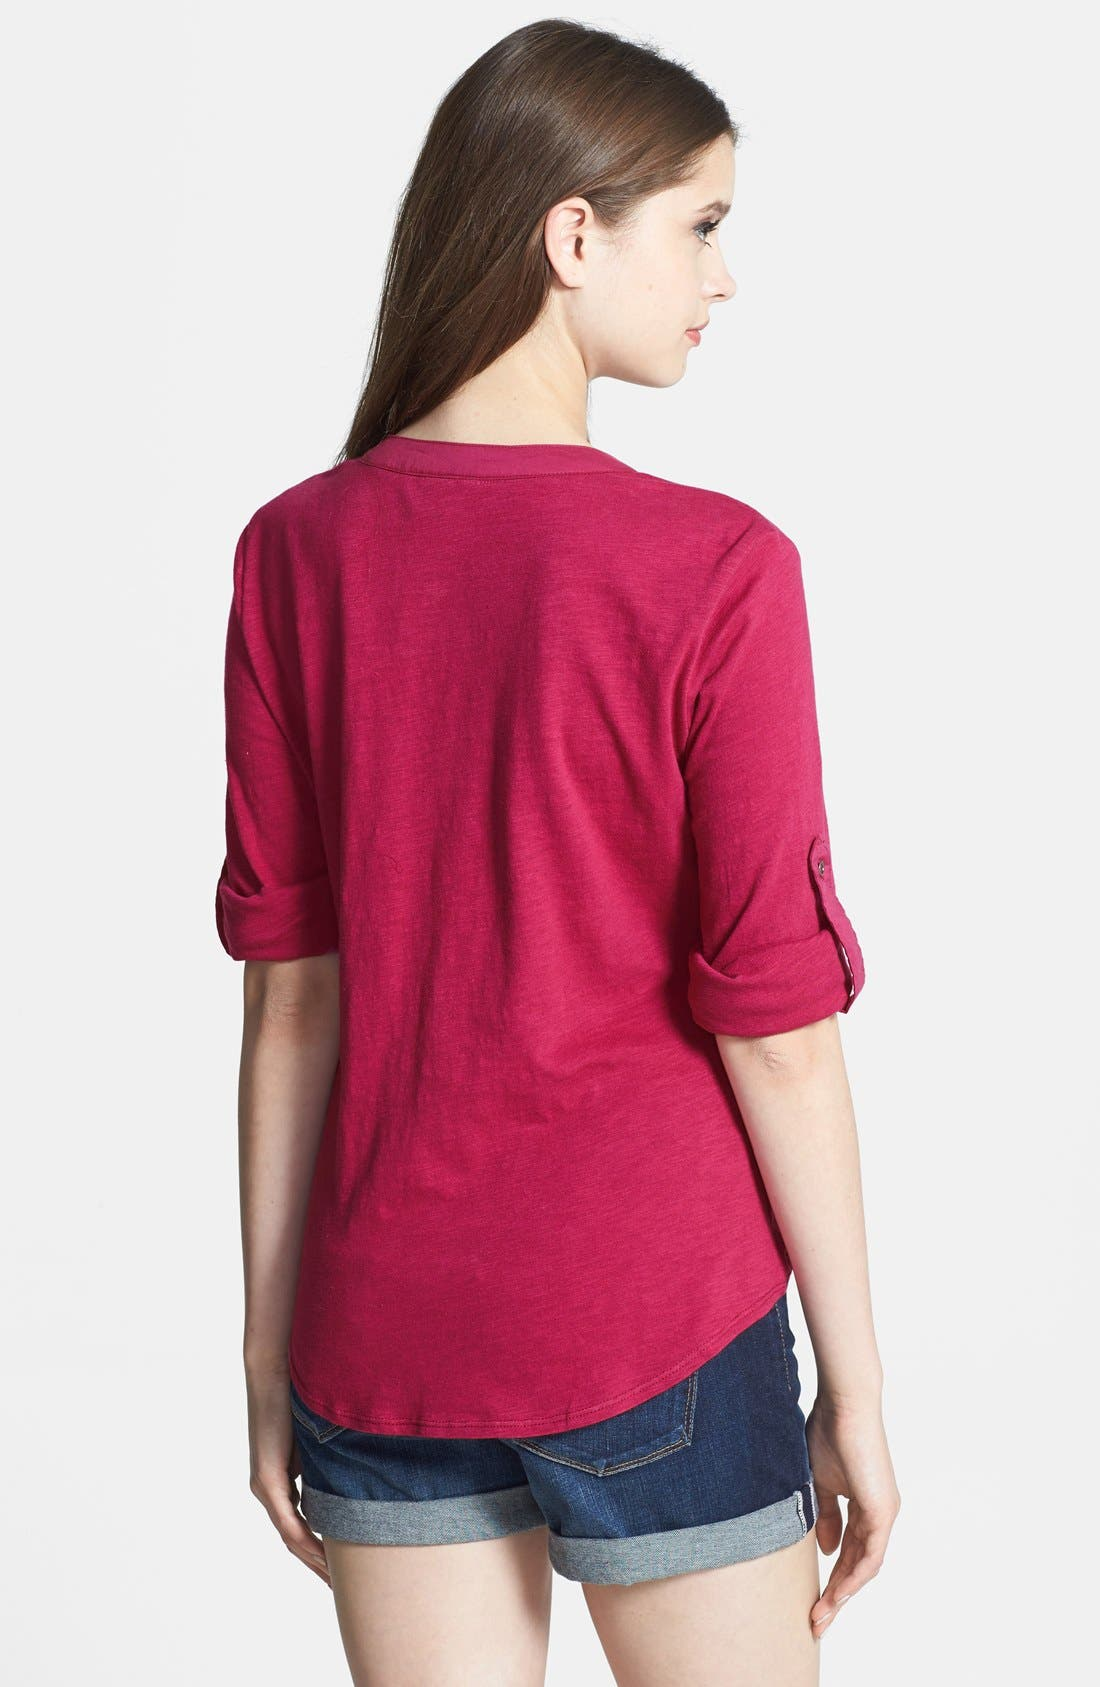 Alternate Image 2  - Sandra Ingrish Roll Sleeve Slub Knit Top (Petite)